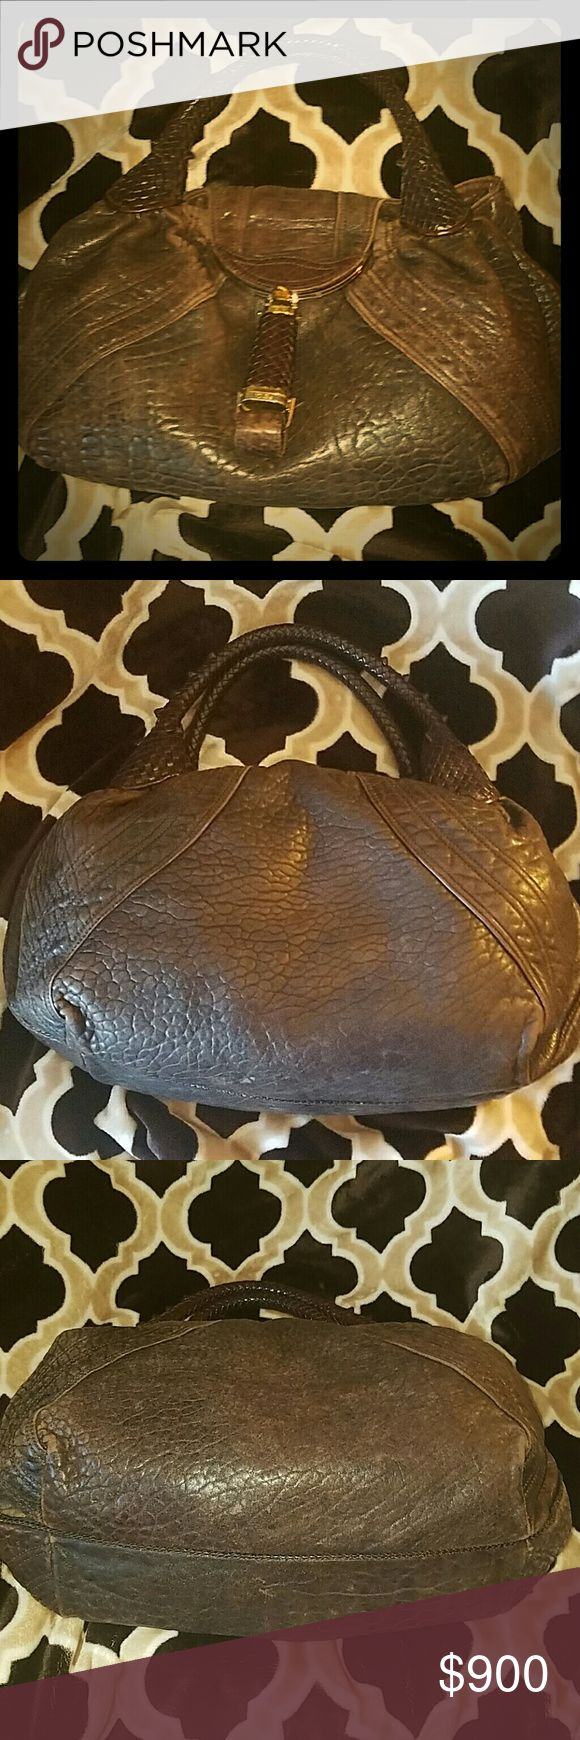 LARGE FENDI SPY BAG  SOFT NAPA LEATHER EUC AUTHENTIC FENDI SPY BAG CHOCOLATE BROWN SEE PICS FOR VARIATIONS IN COLOR GIVES BAG CHARACTER. GORGEOUS AND CLEAN INSIDE AND OUT. FENDI Bags